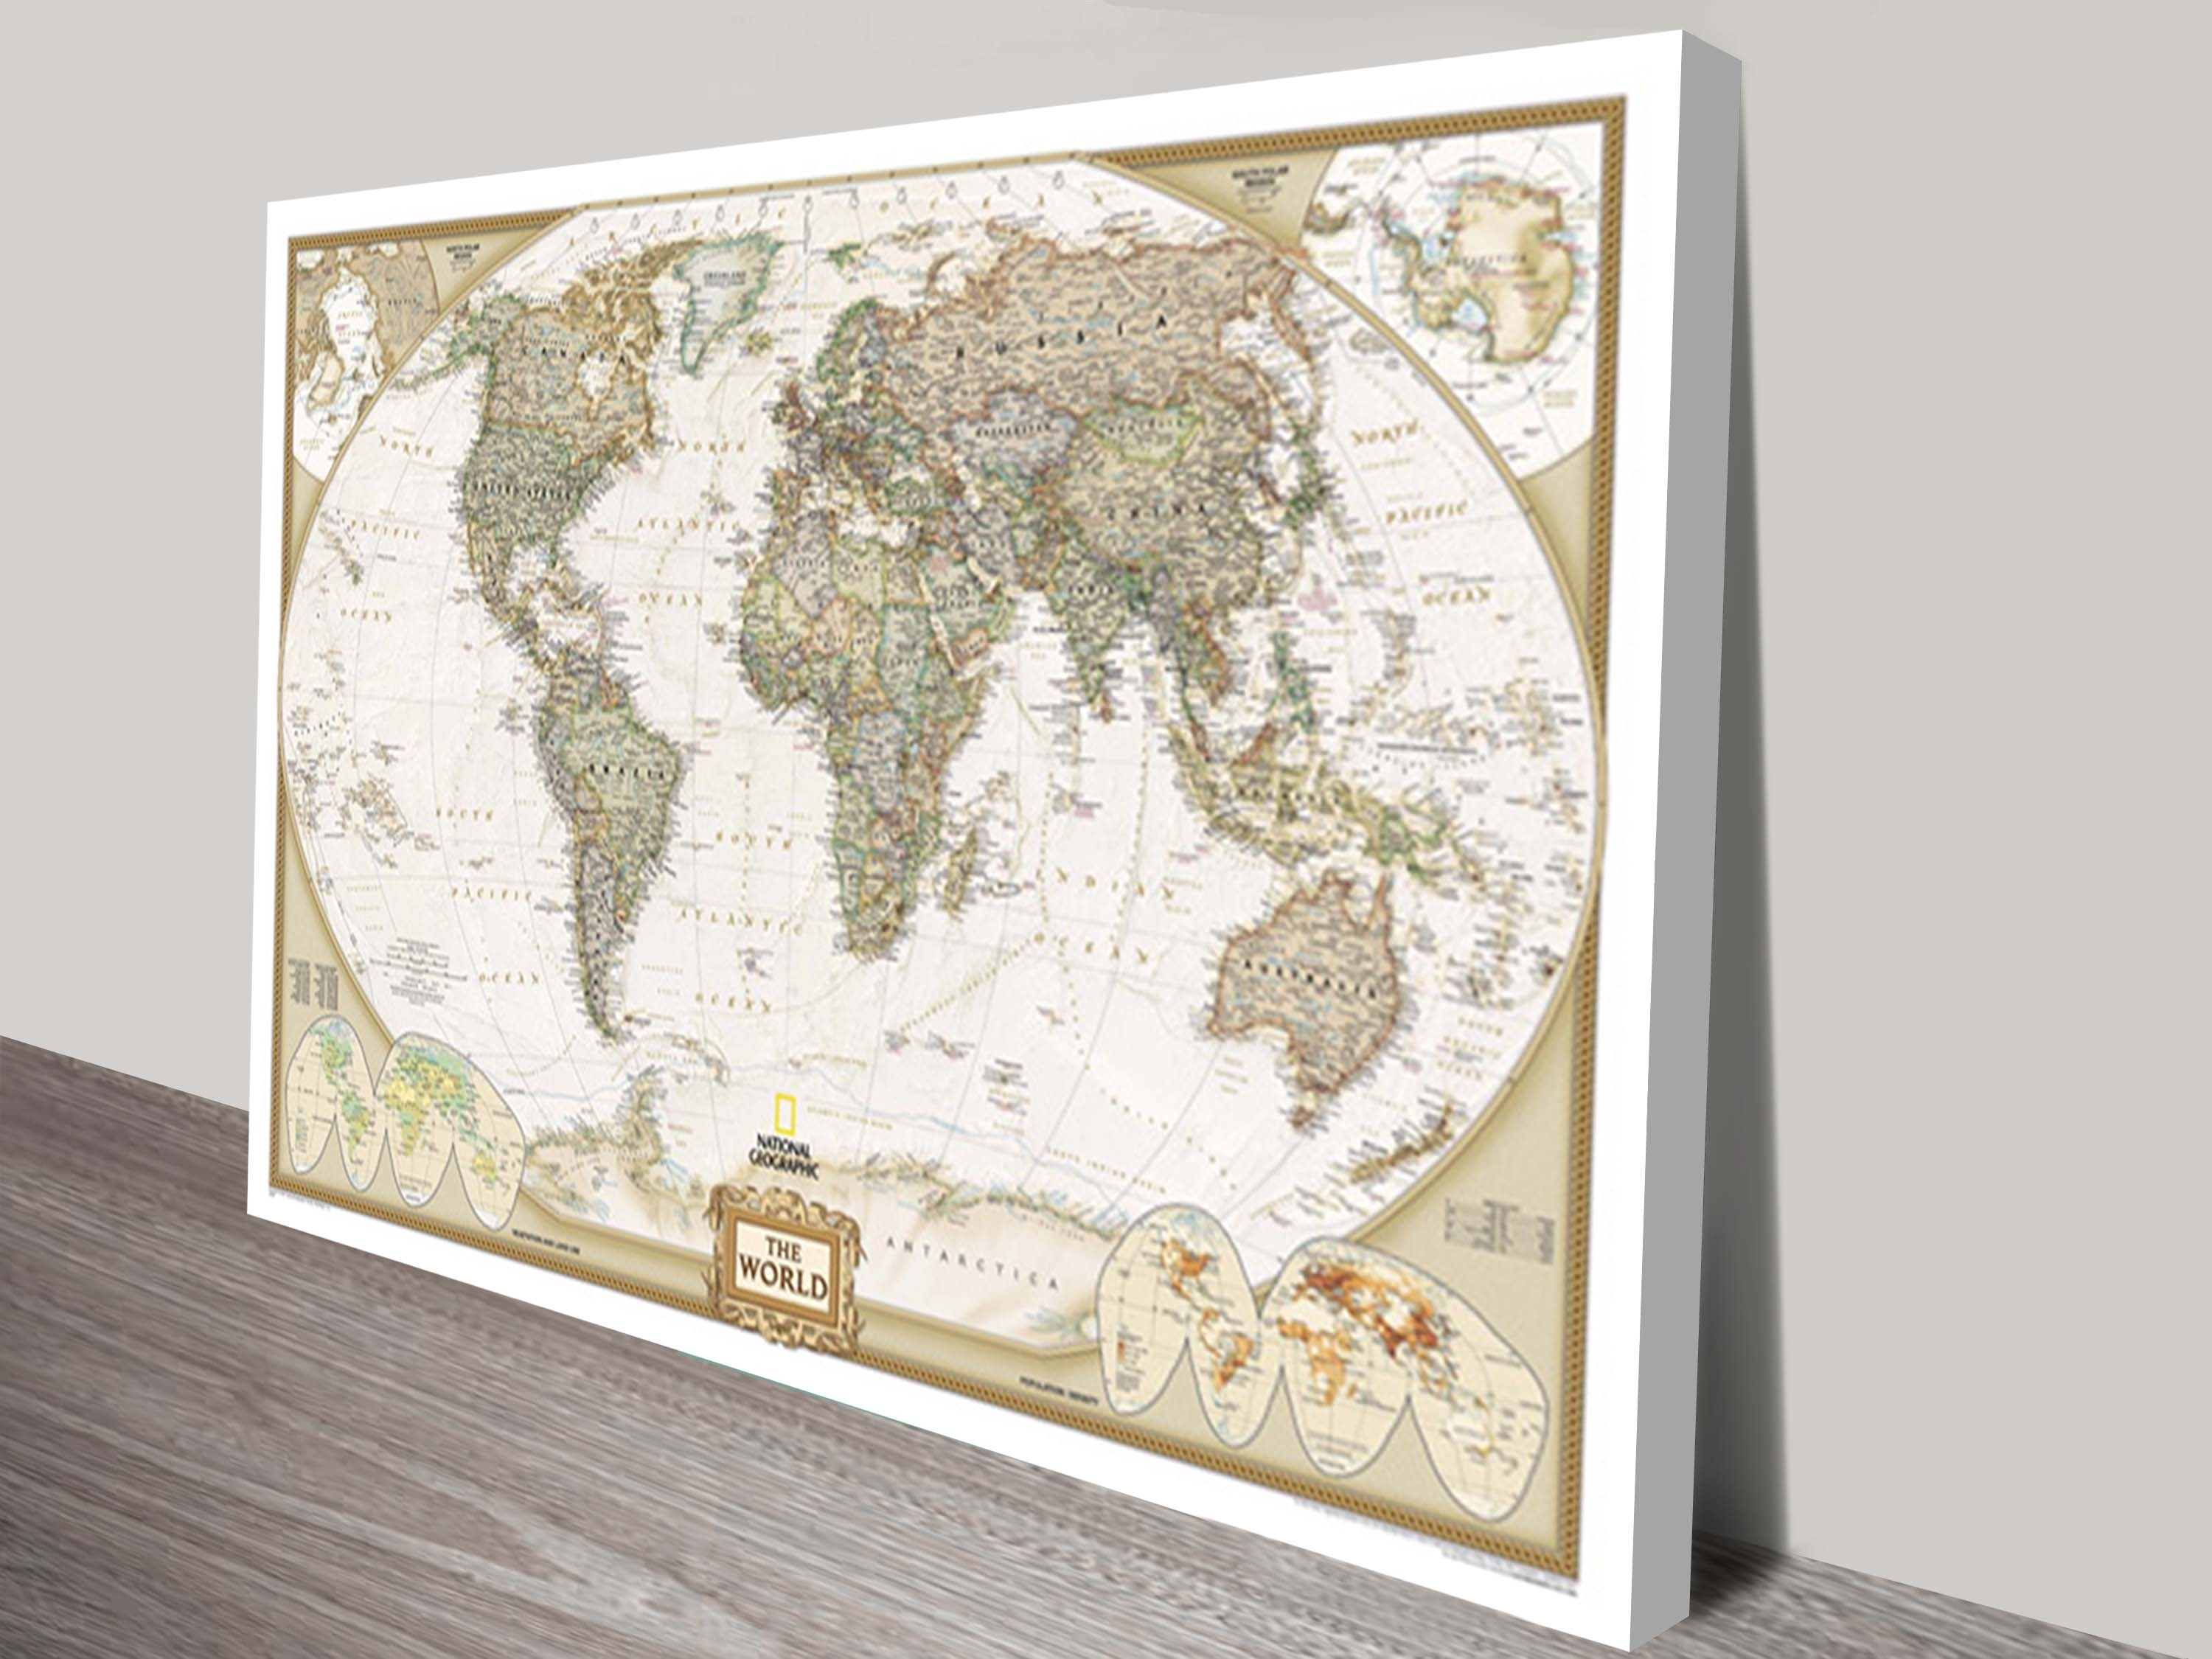 World Map Canvas Wall Art | Framed Maps Sydney Pertaining To World Map Wall Art Framed (Photo 3 of 20)